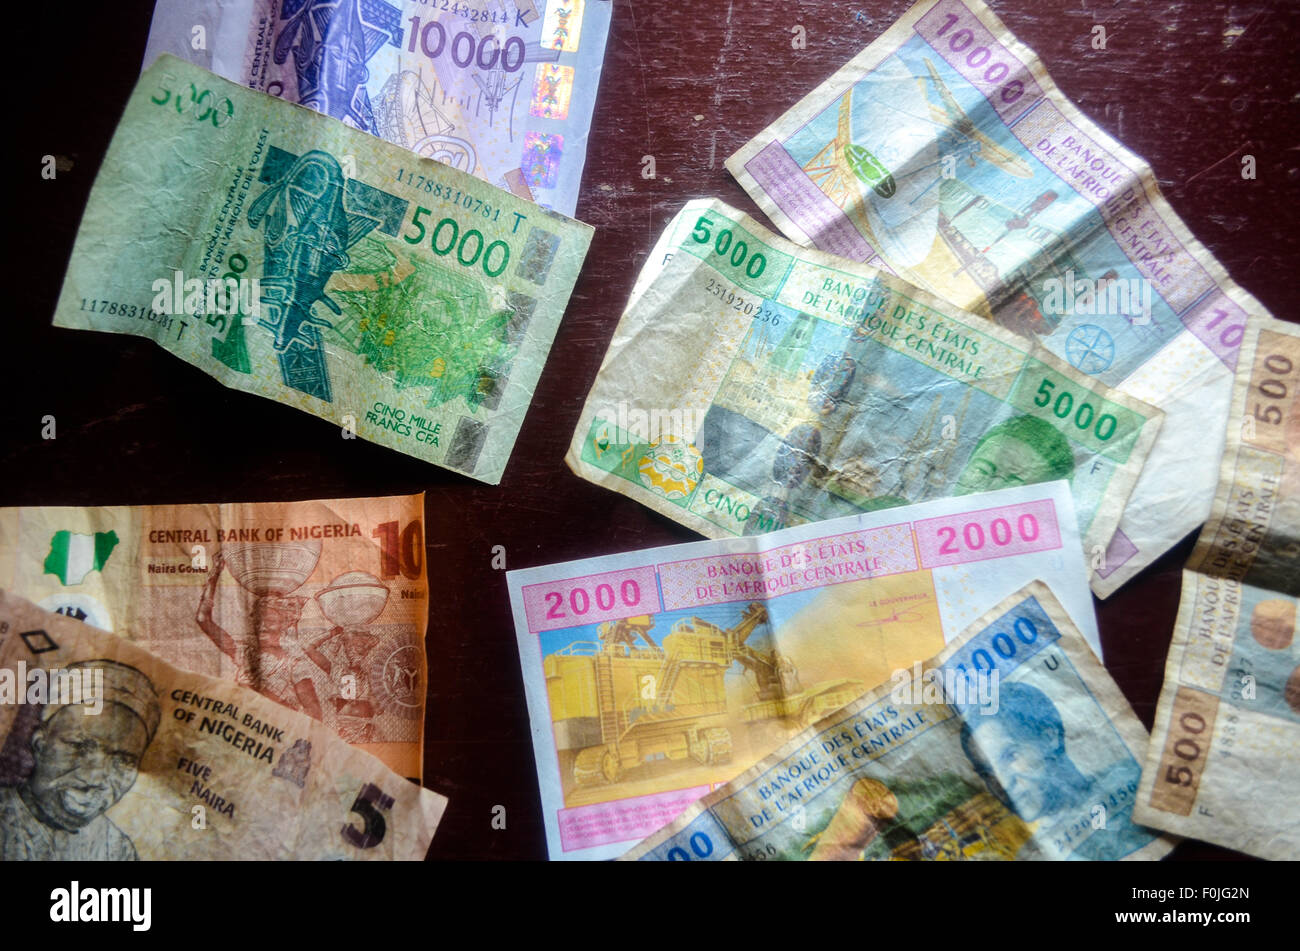 Bank notes of West Africa : Francs CFA fron West and Central Africa (XOF and XAF) and Nigerian naira - Stock Image